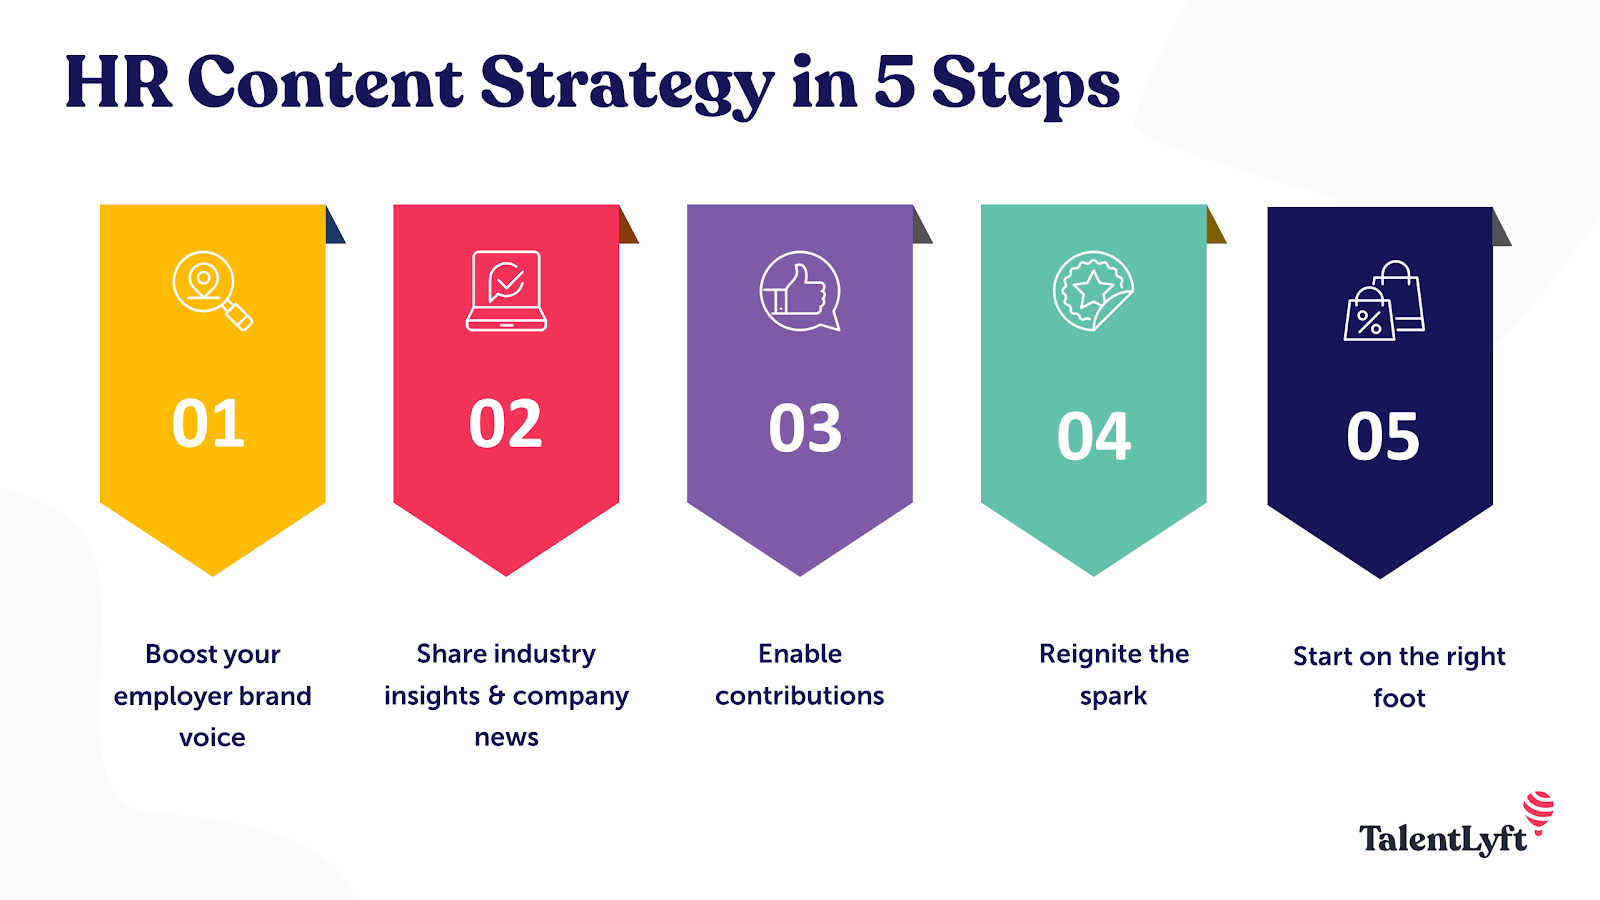 Build HR content strategy in 5 easy steps